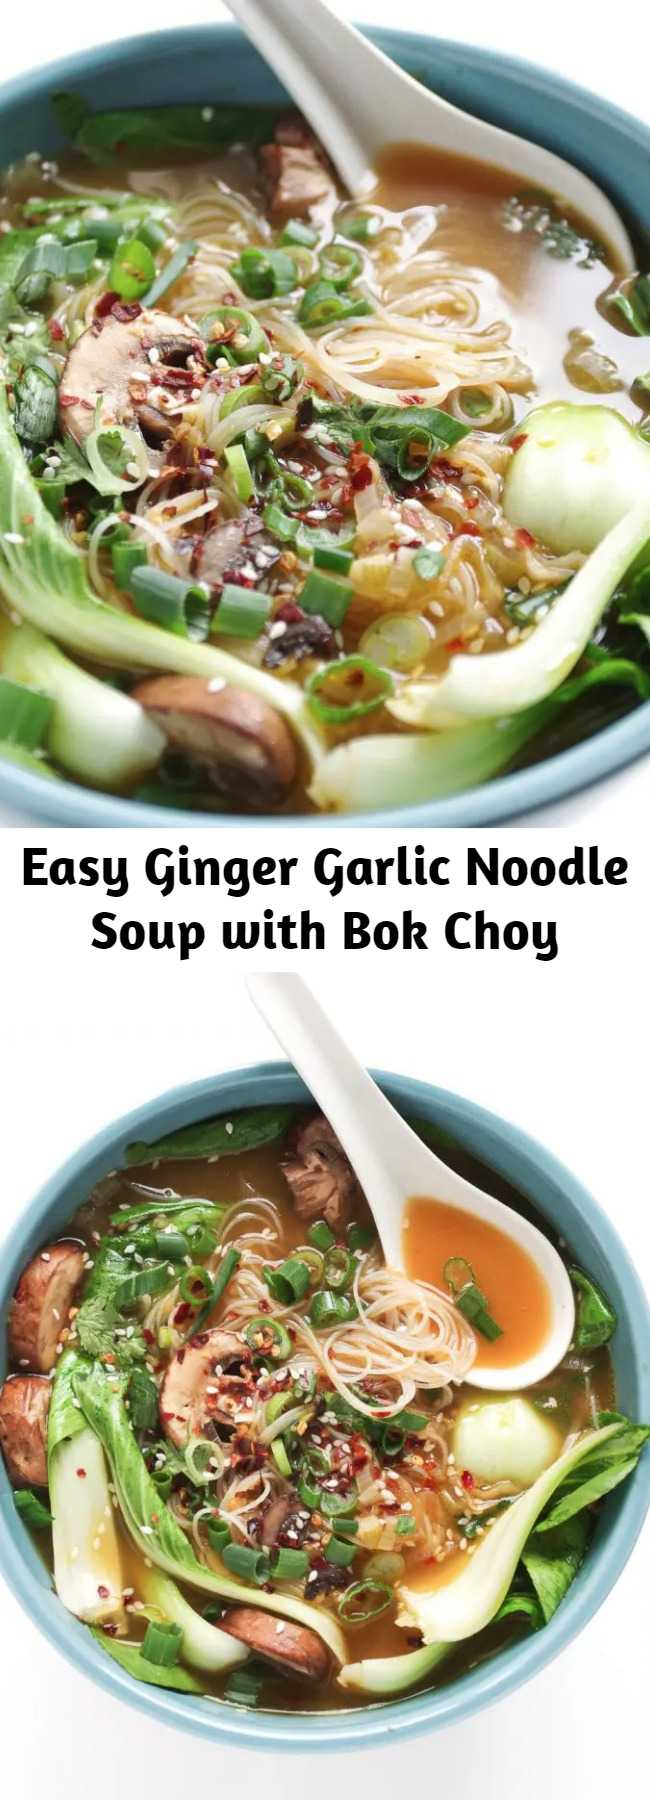 Easy Ginger Garlic Noodle Soup with Bok Choy Recipe - Ginger Garlic Noodle Soup with Bok Choy Ginger Garlic Noodle Soup with Bok Choy is a nutritious, comforting, and flu-fighting twenty-minute recipe made with homemade vegetarian broth, noodles, mushrooms, and baby bok choy. Easily make it your own by adding chicken, shrimp, spicy chilis, or other veggies.